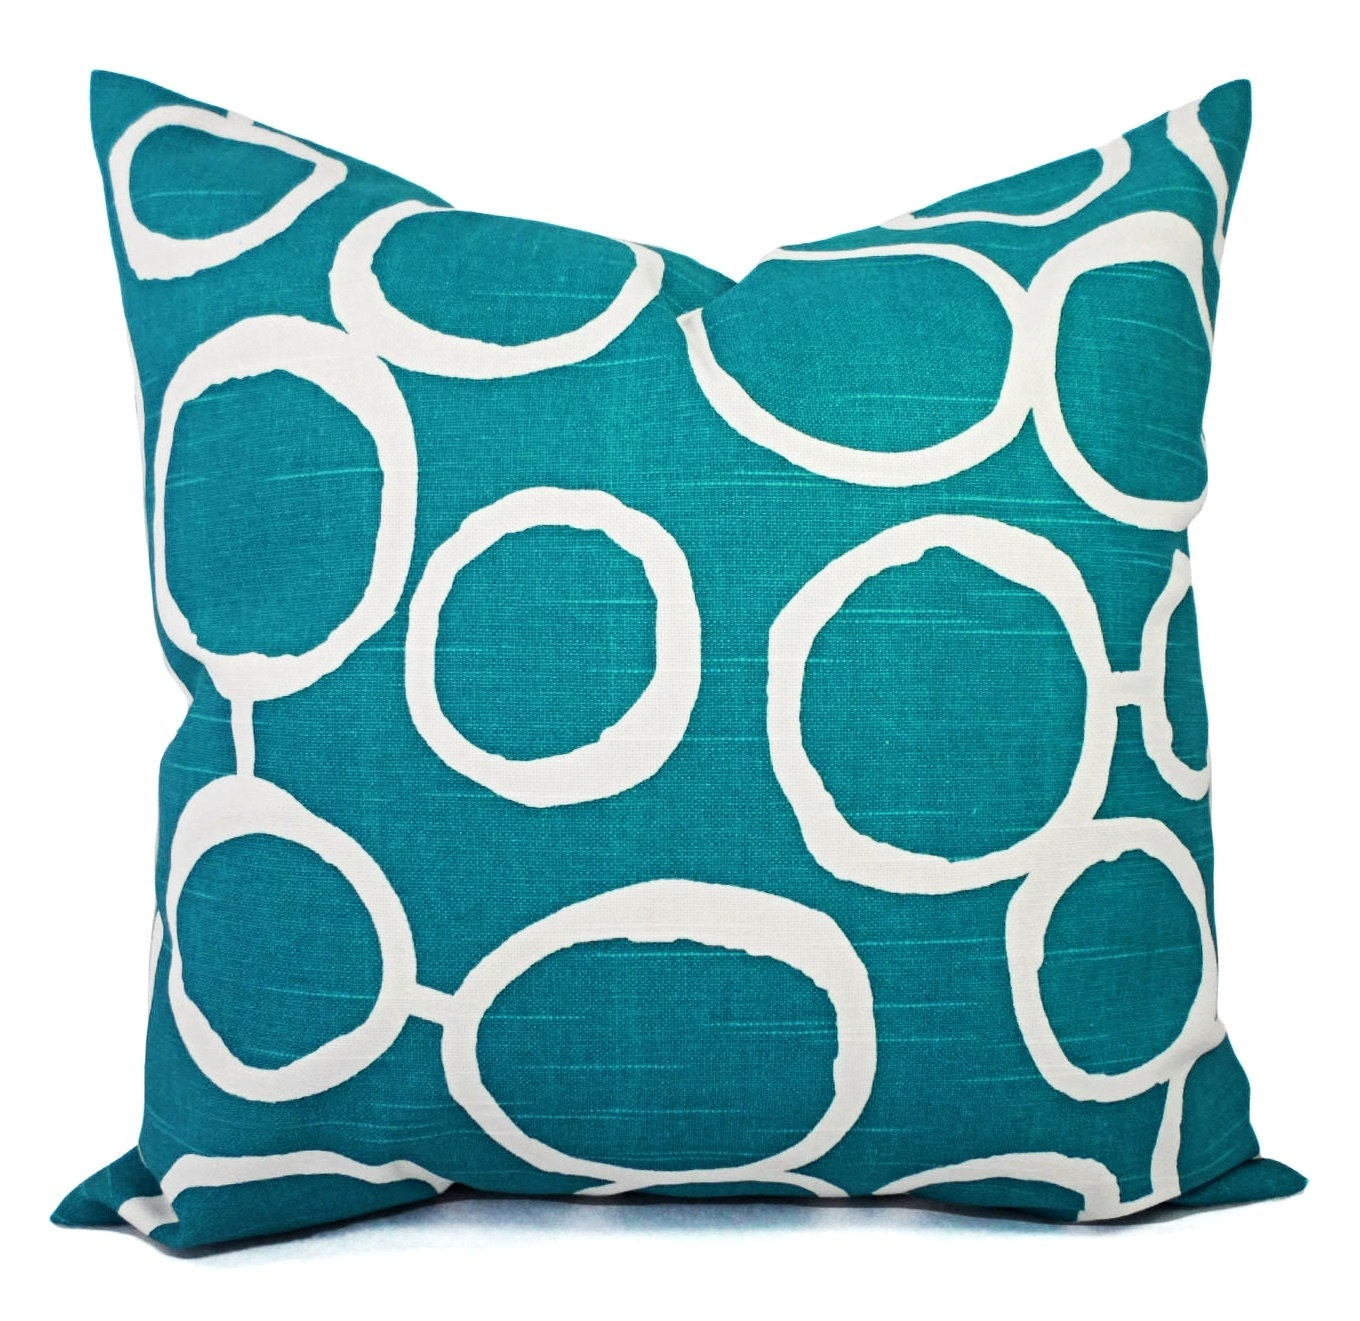 Two Turquoise Decorative Pillow Covers Two Turquoise and